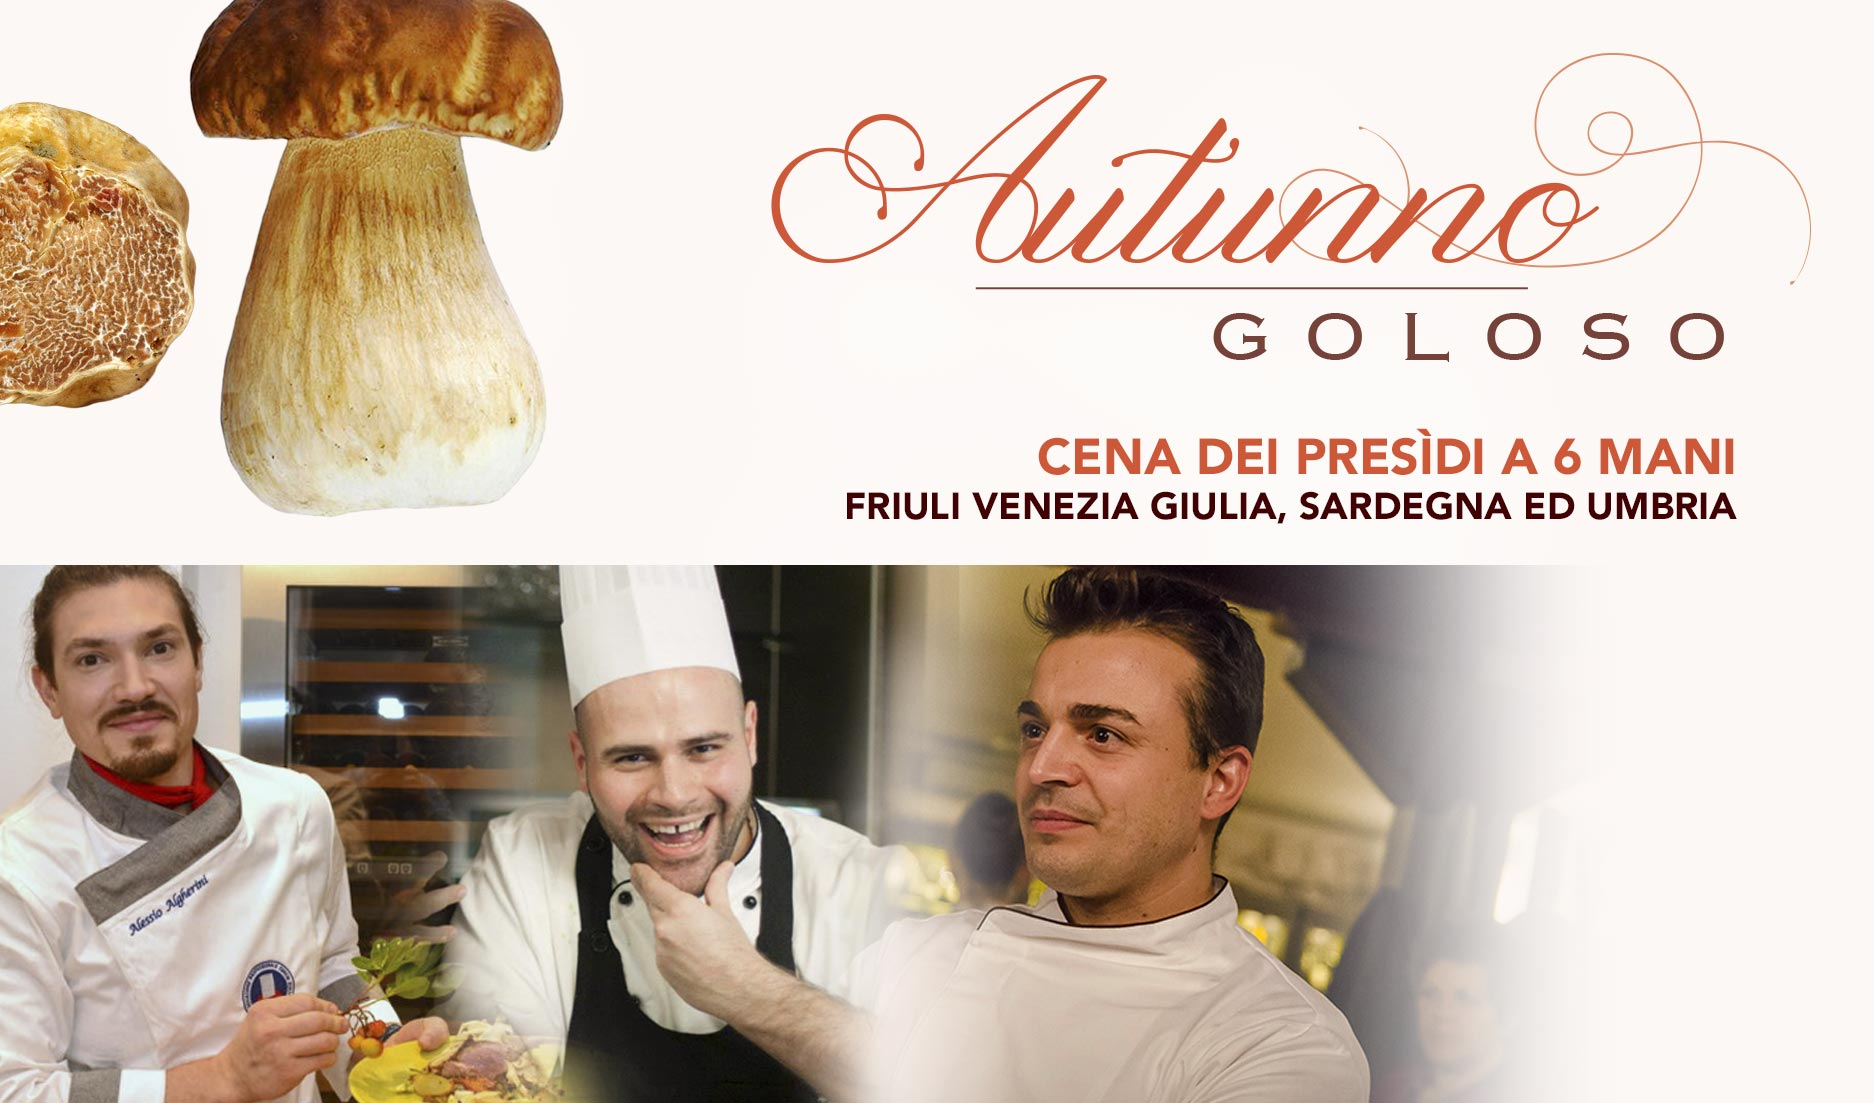 autunno-goloso-n2 slow food